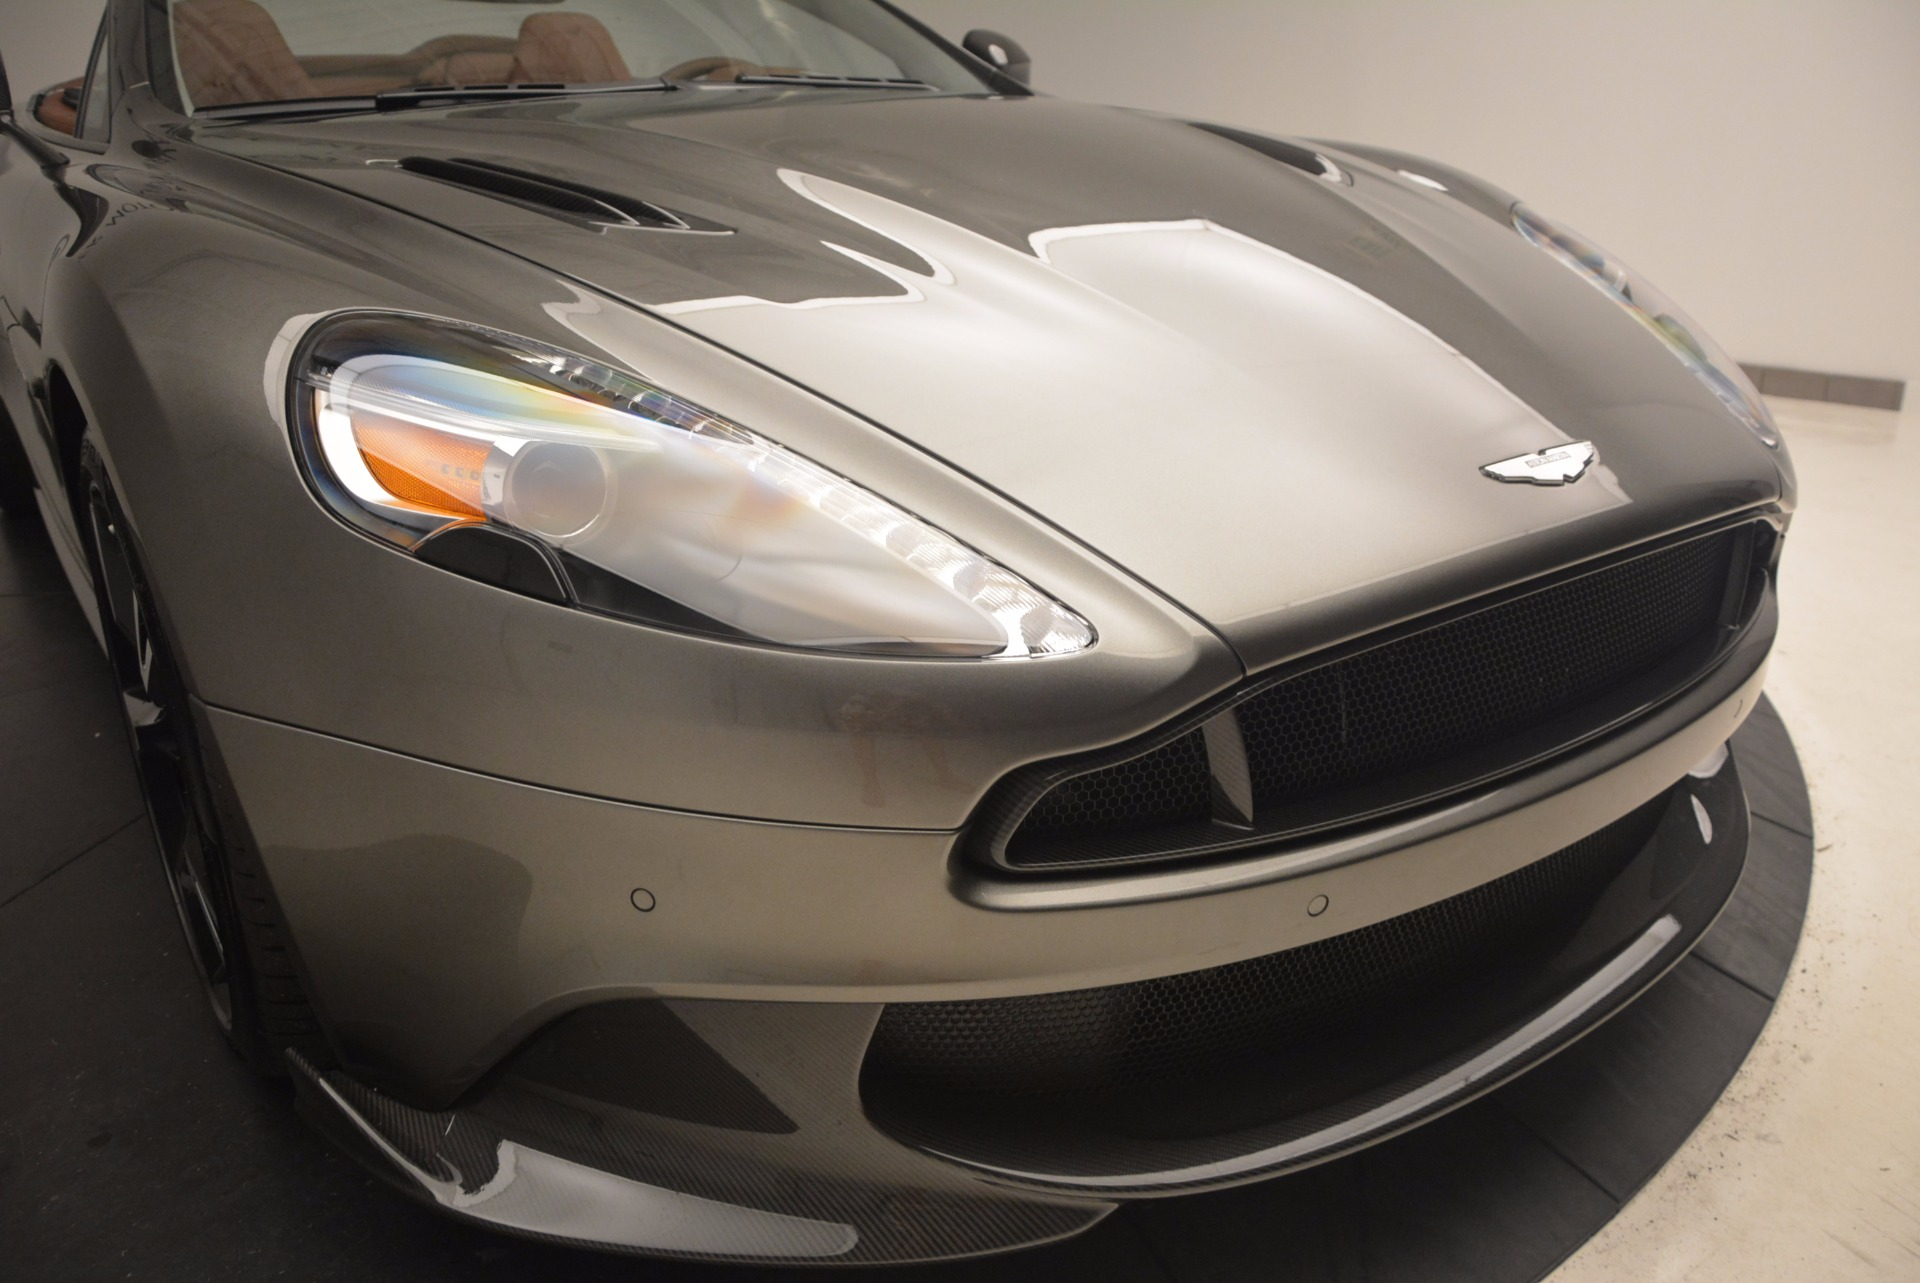 Used 2018 Aston Martin Vanquish S Convertible For Sale In Westport, CT 1362_p28